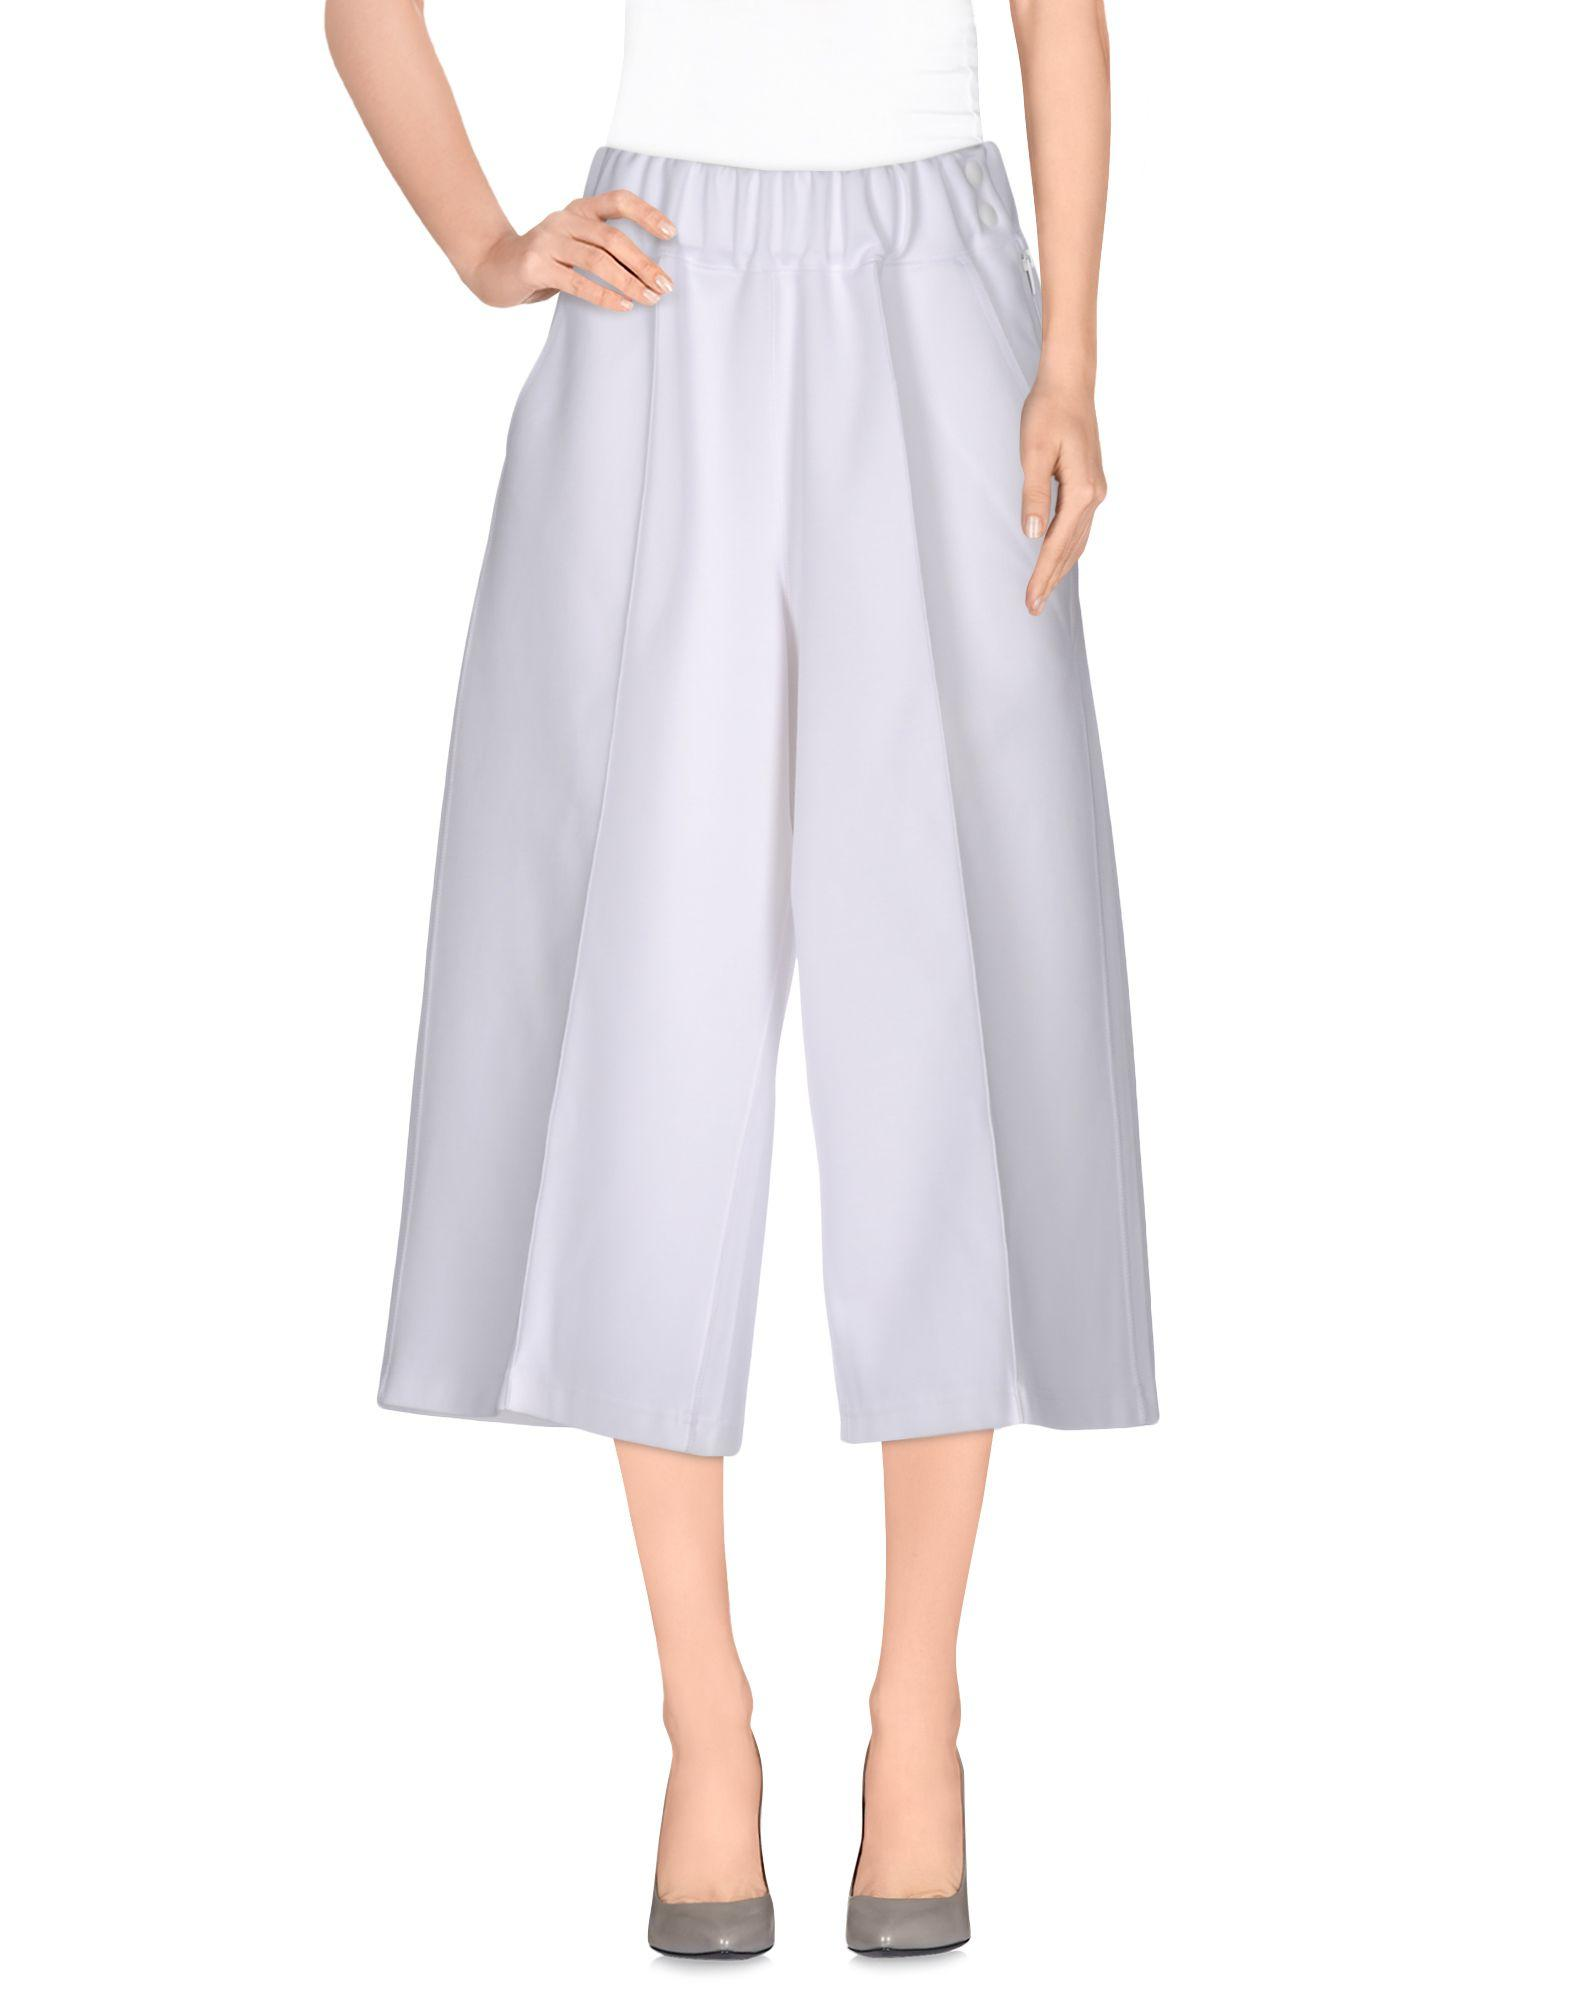 8b312b79a566 Adidas Originals By Hyke Cropped Pants   Culottes In White